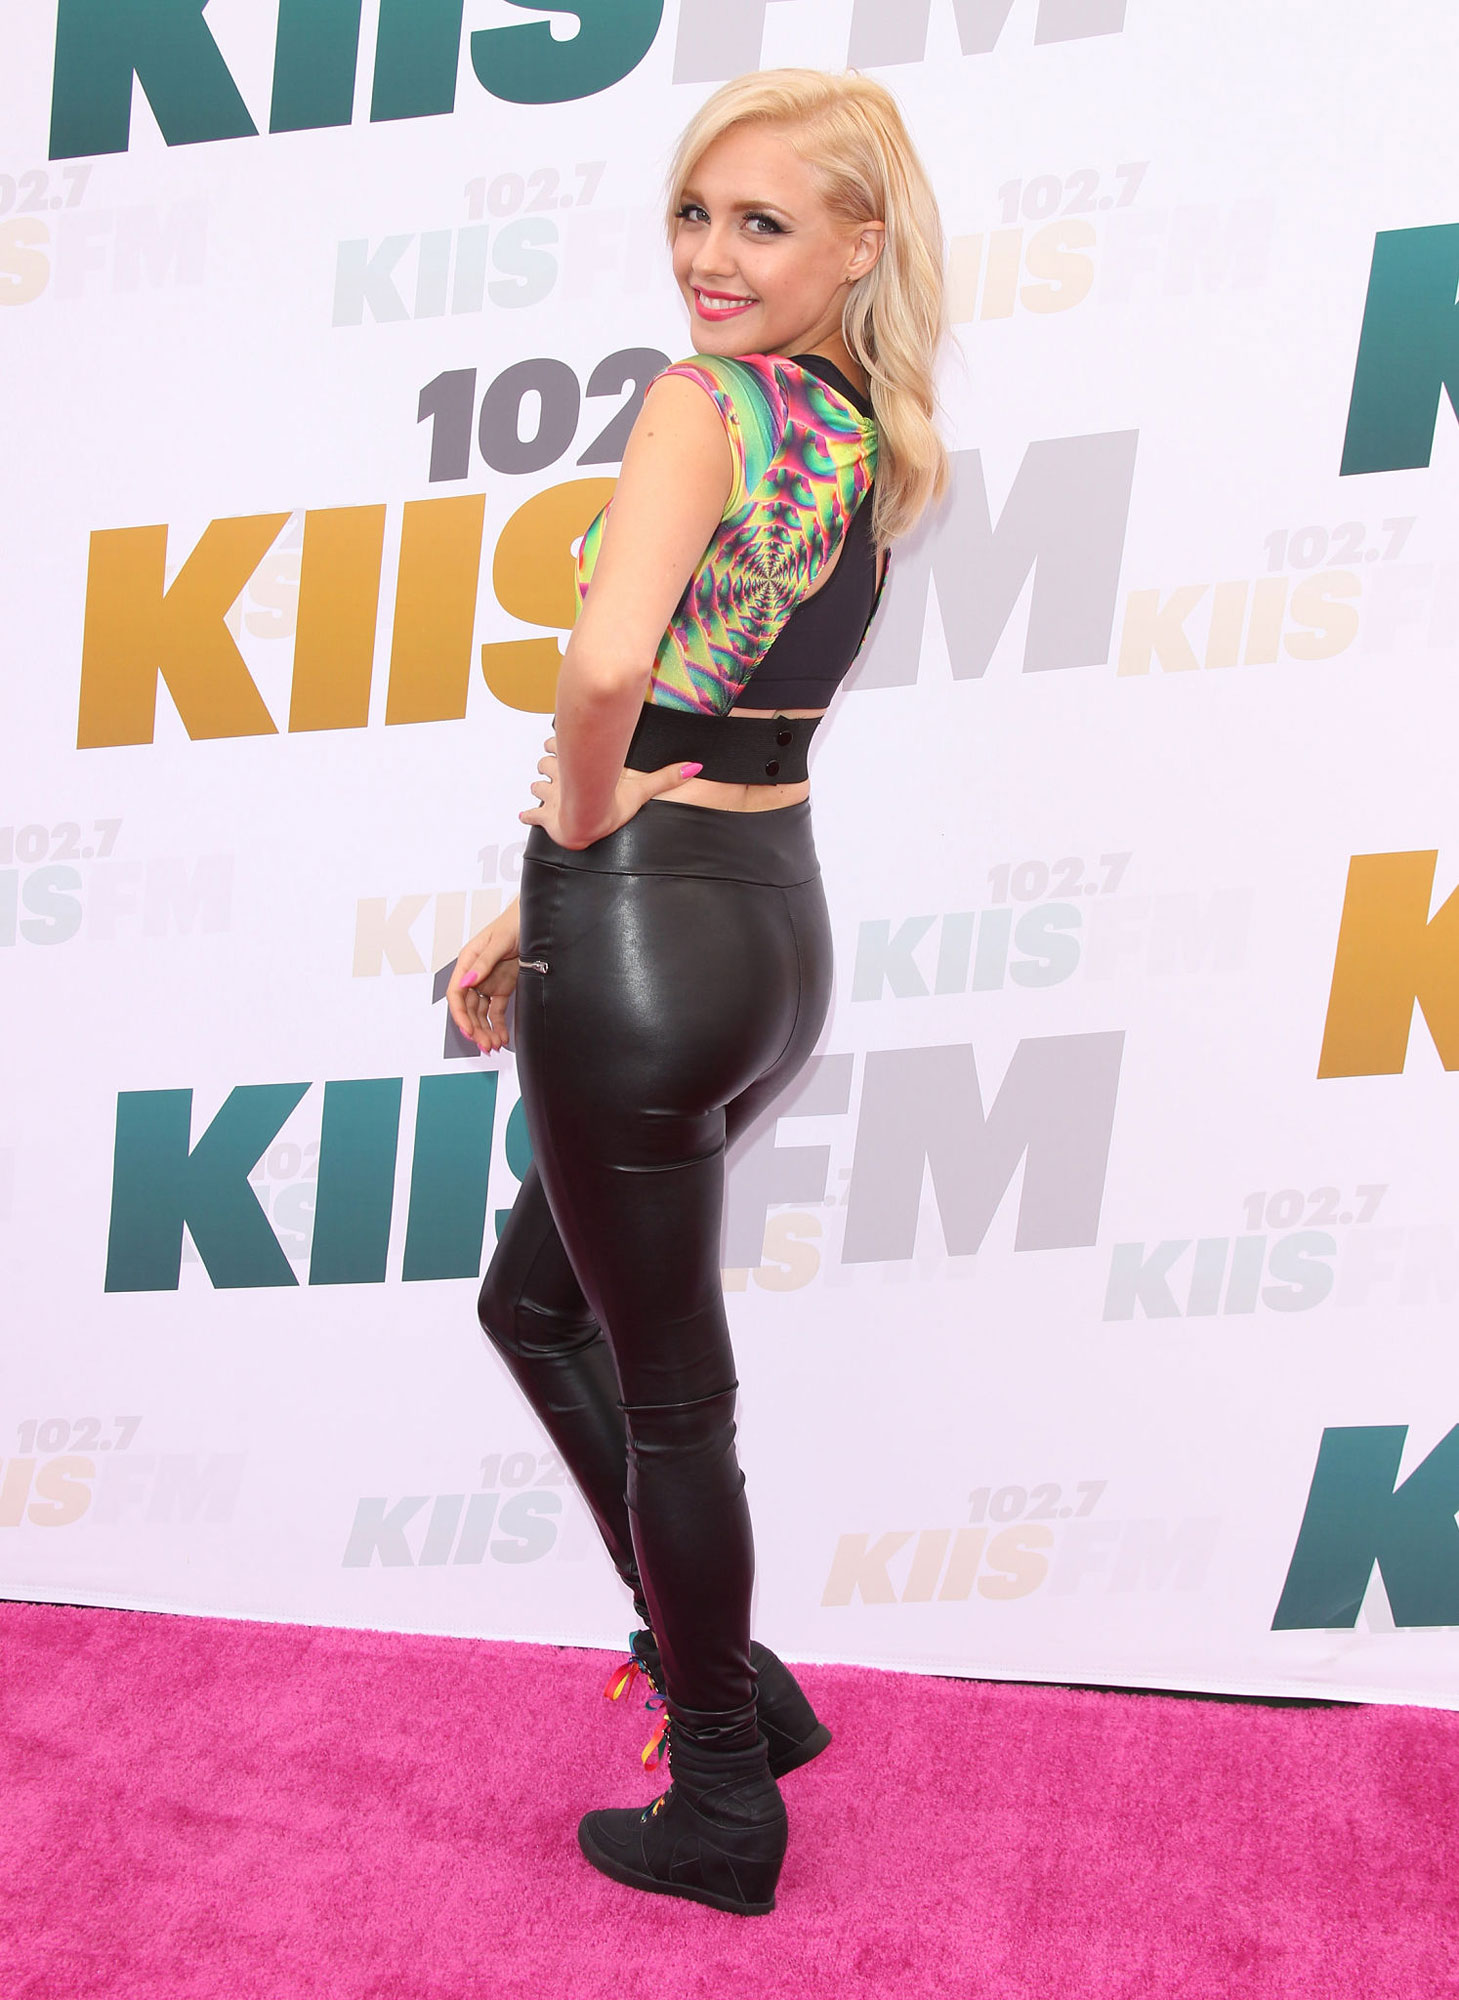 Eden xo arrives at 102.7 KIIS FM's Wango Tango